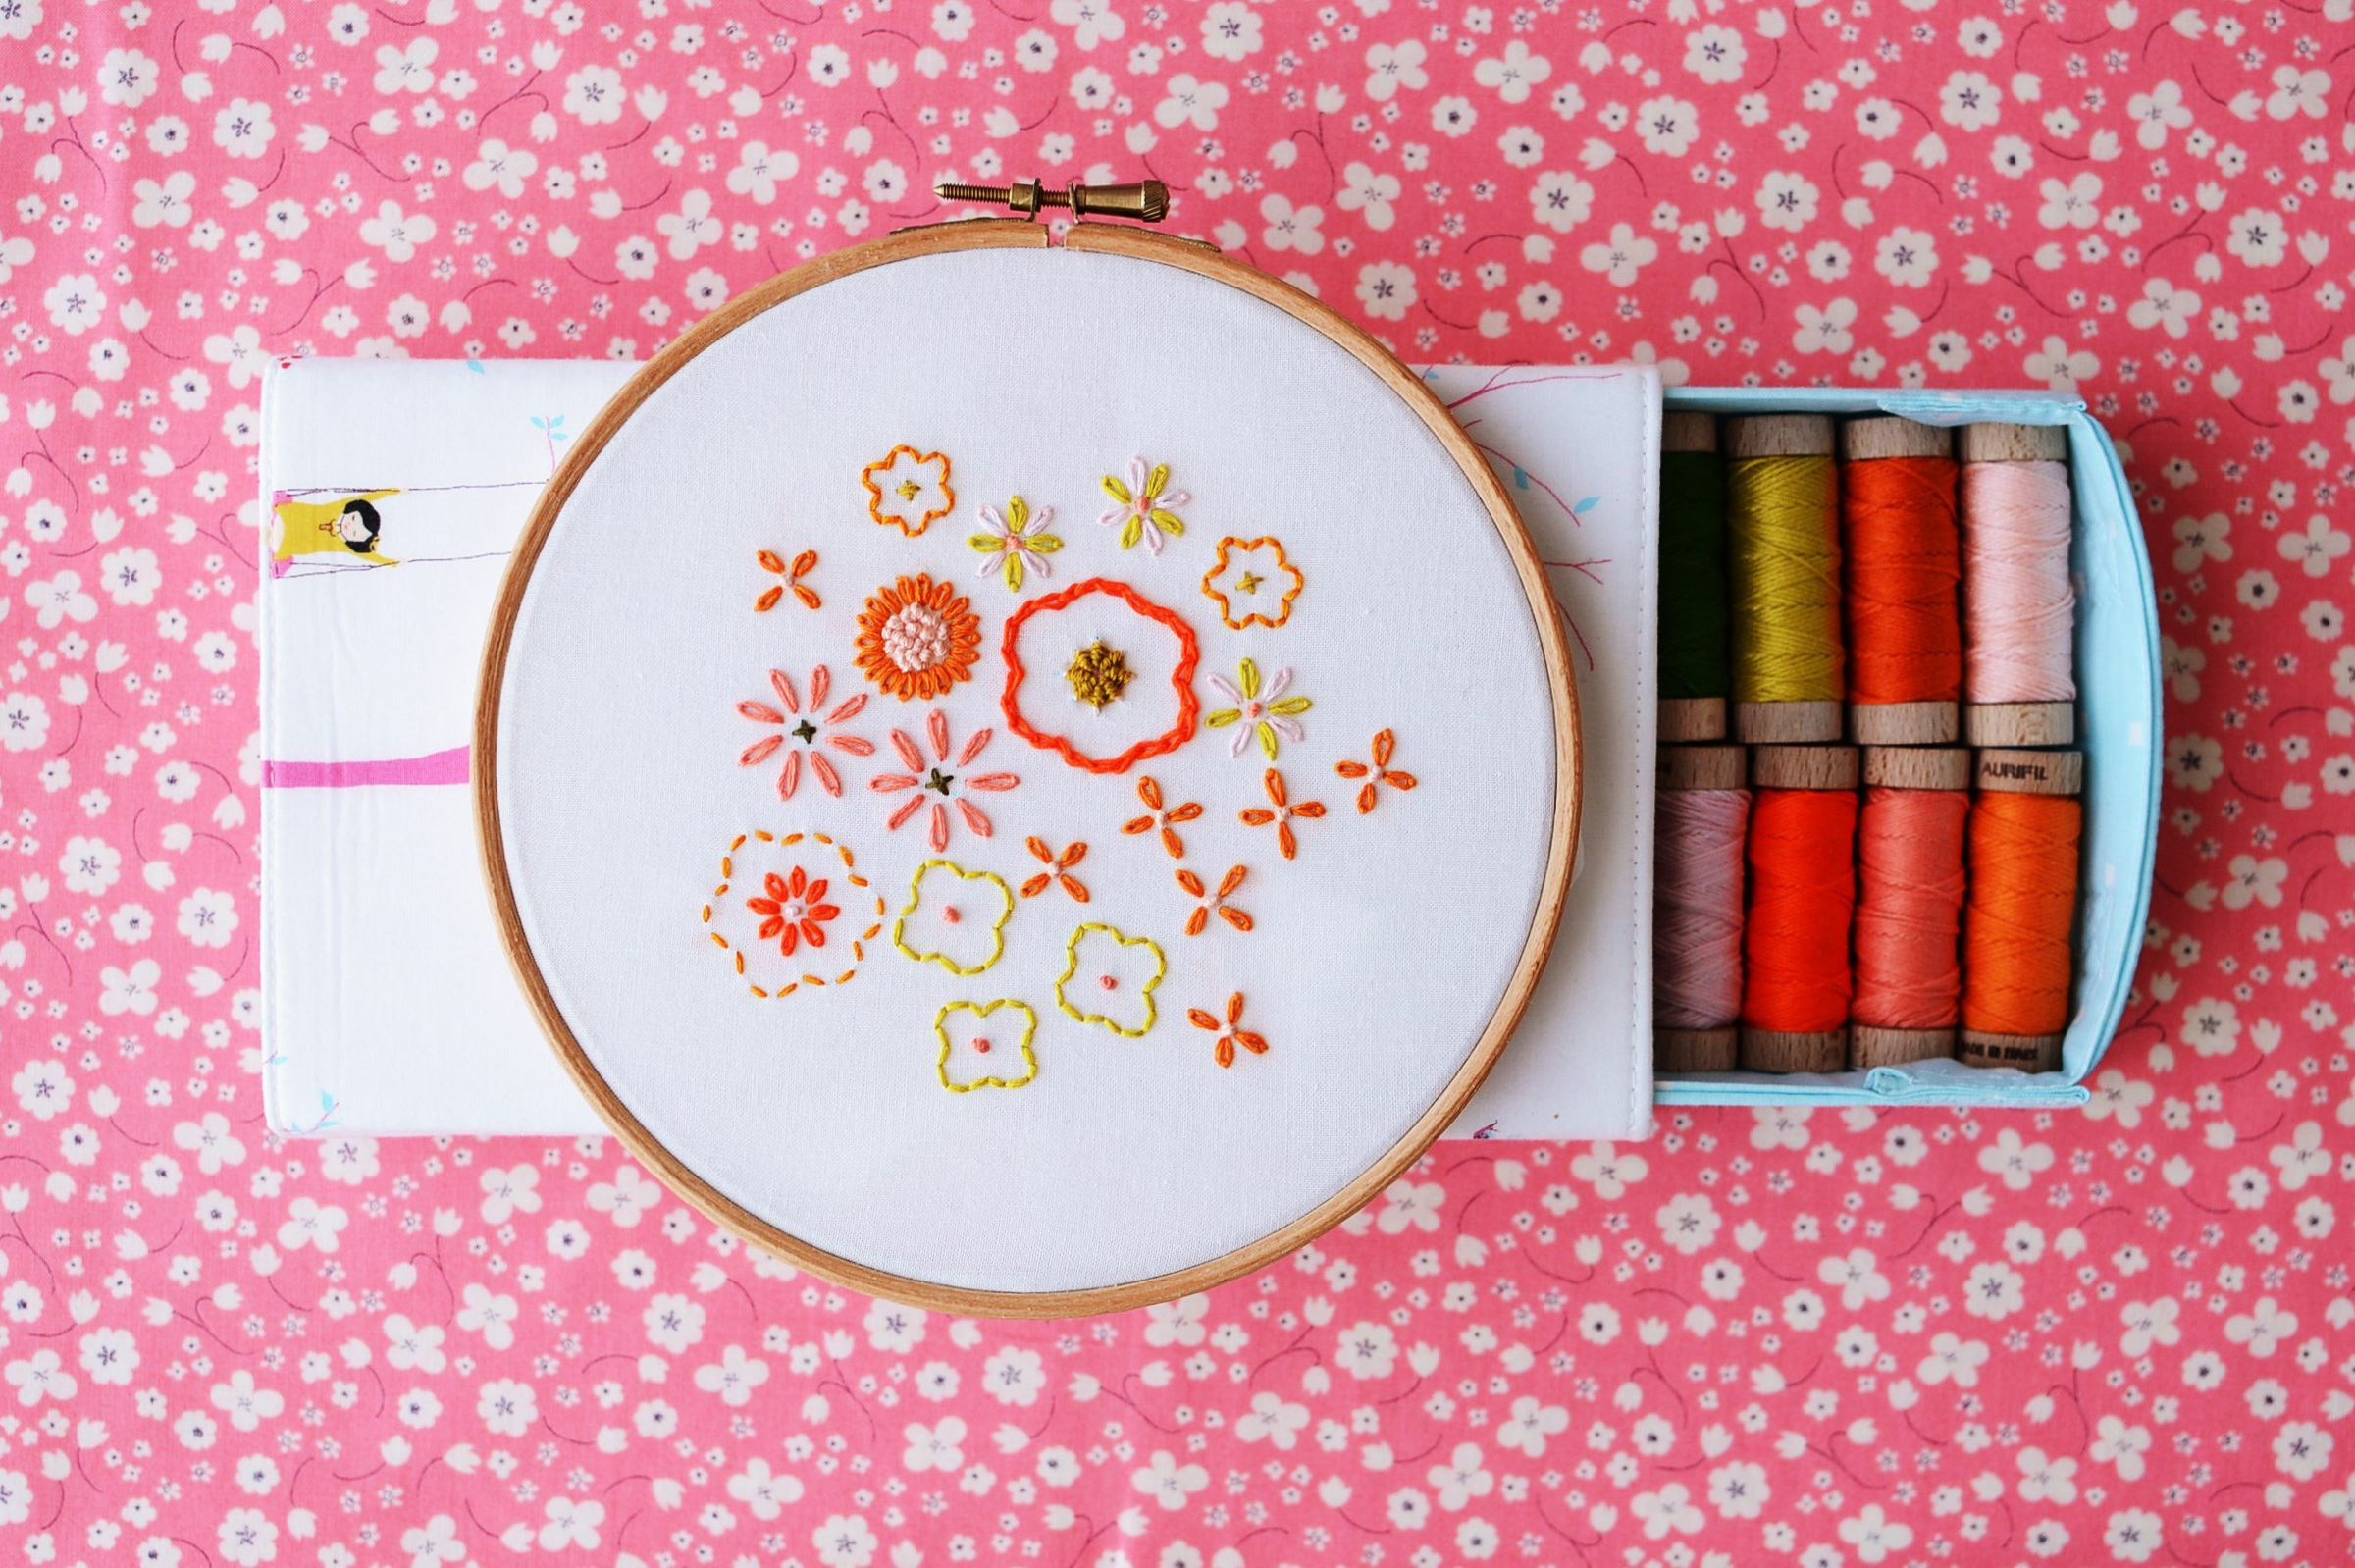 Hand embroidery patterns for spring